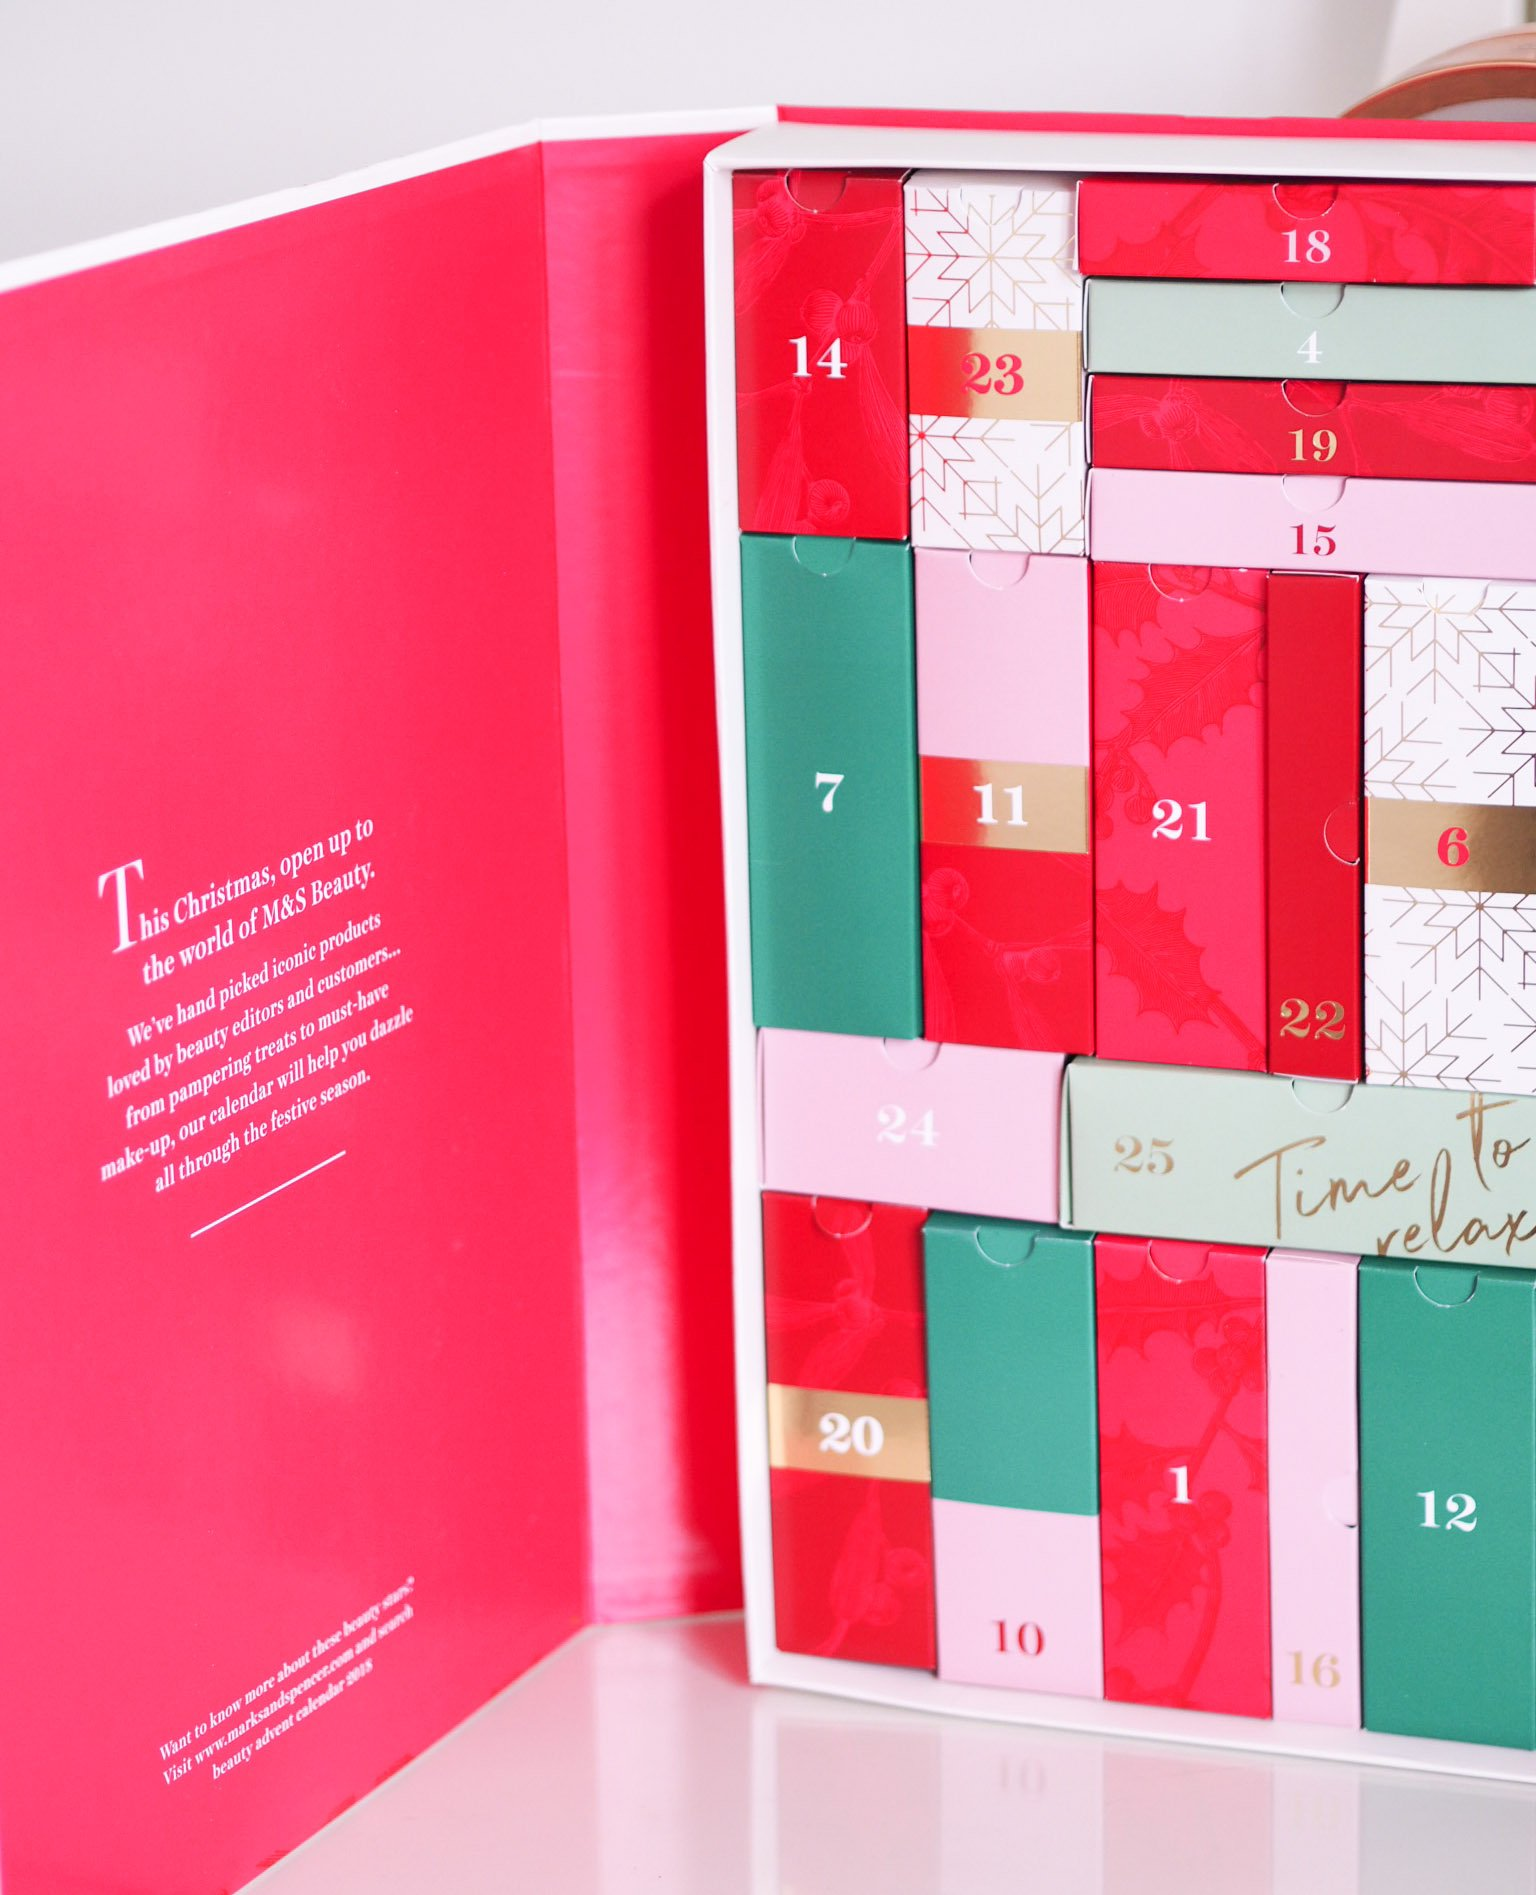 Marks and Spencer Beauty Advent Calendar 2018 - The Book of Beauty